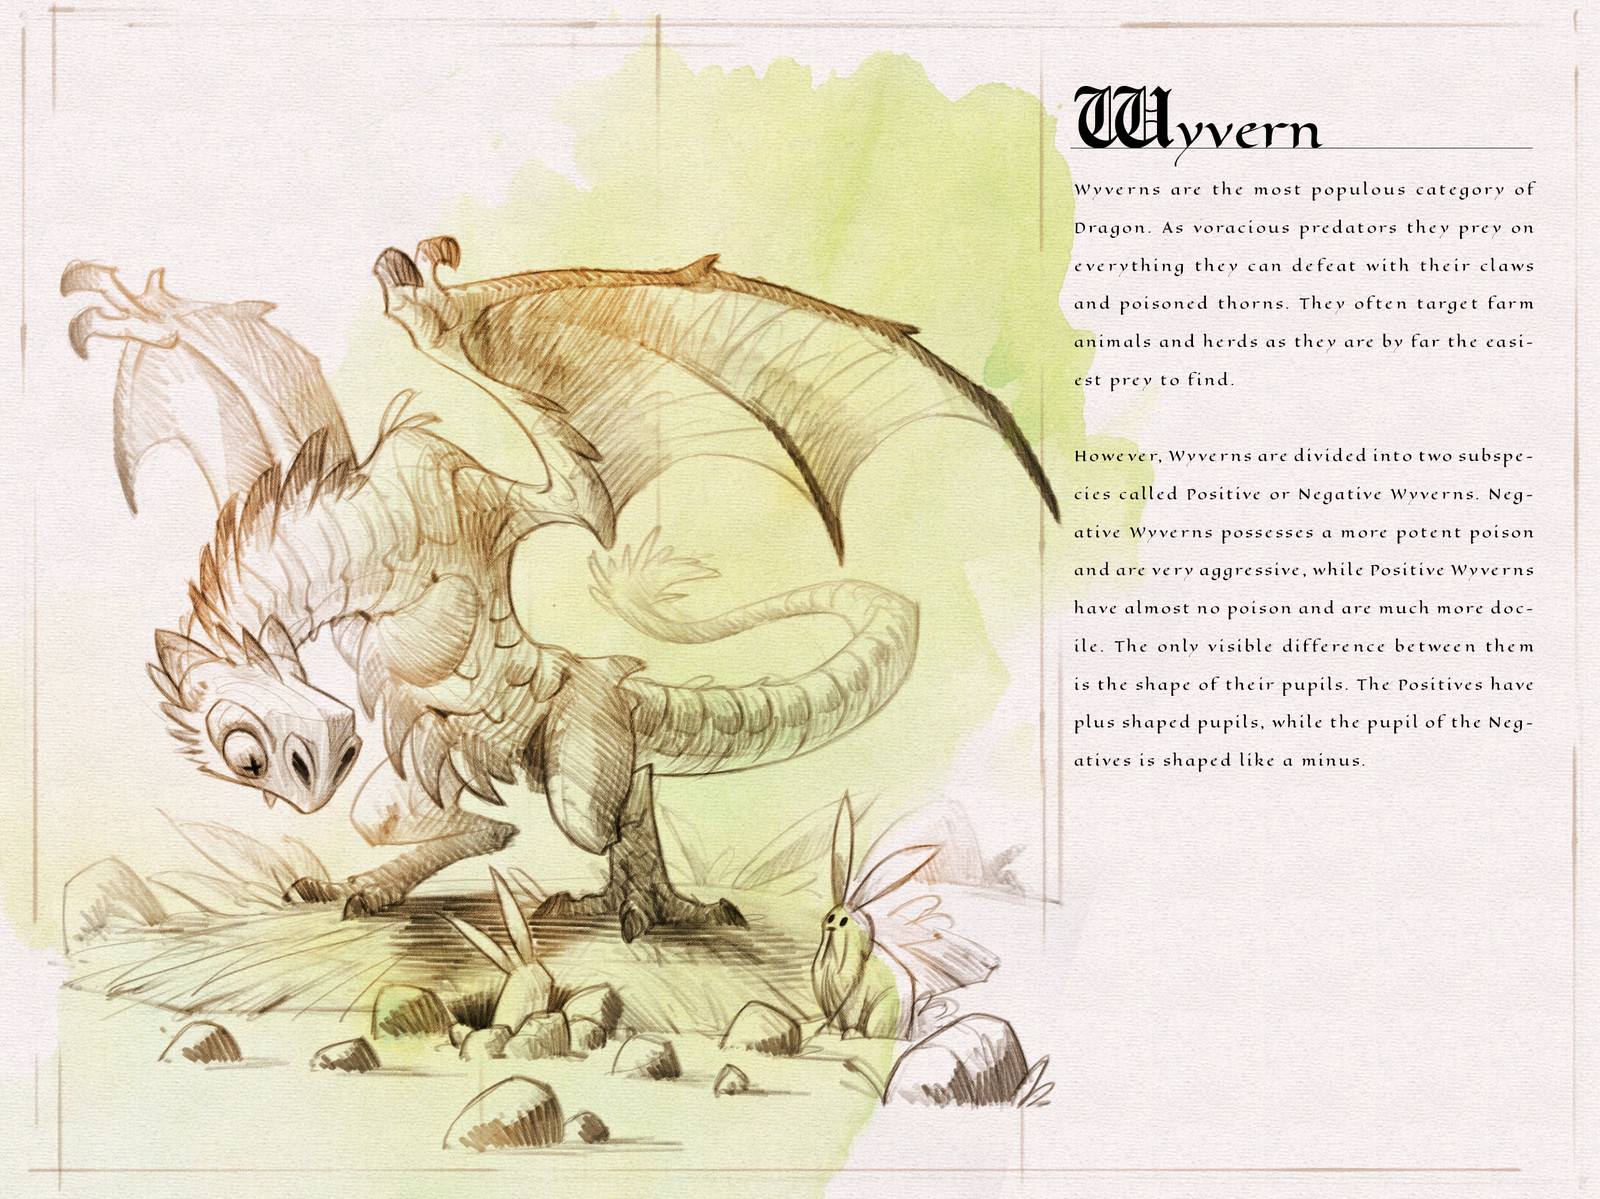 Page one of the  Dragon Compendium showing and describing the Wyvern